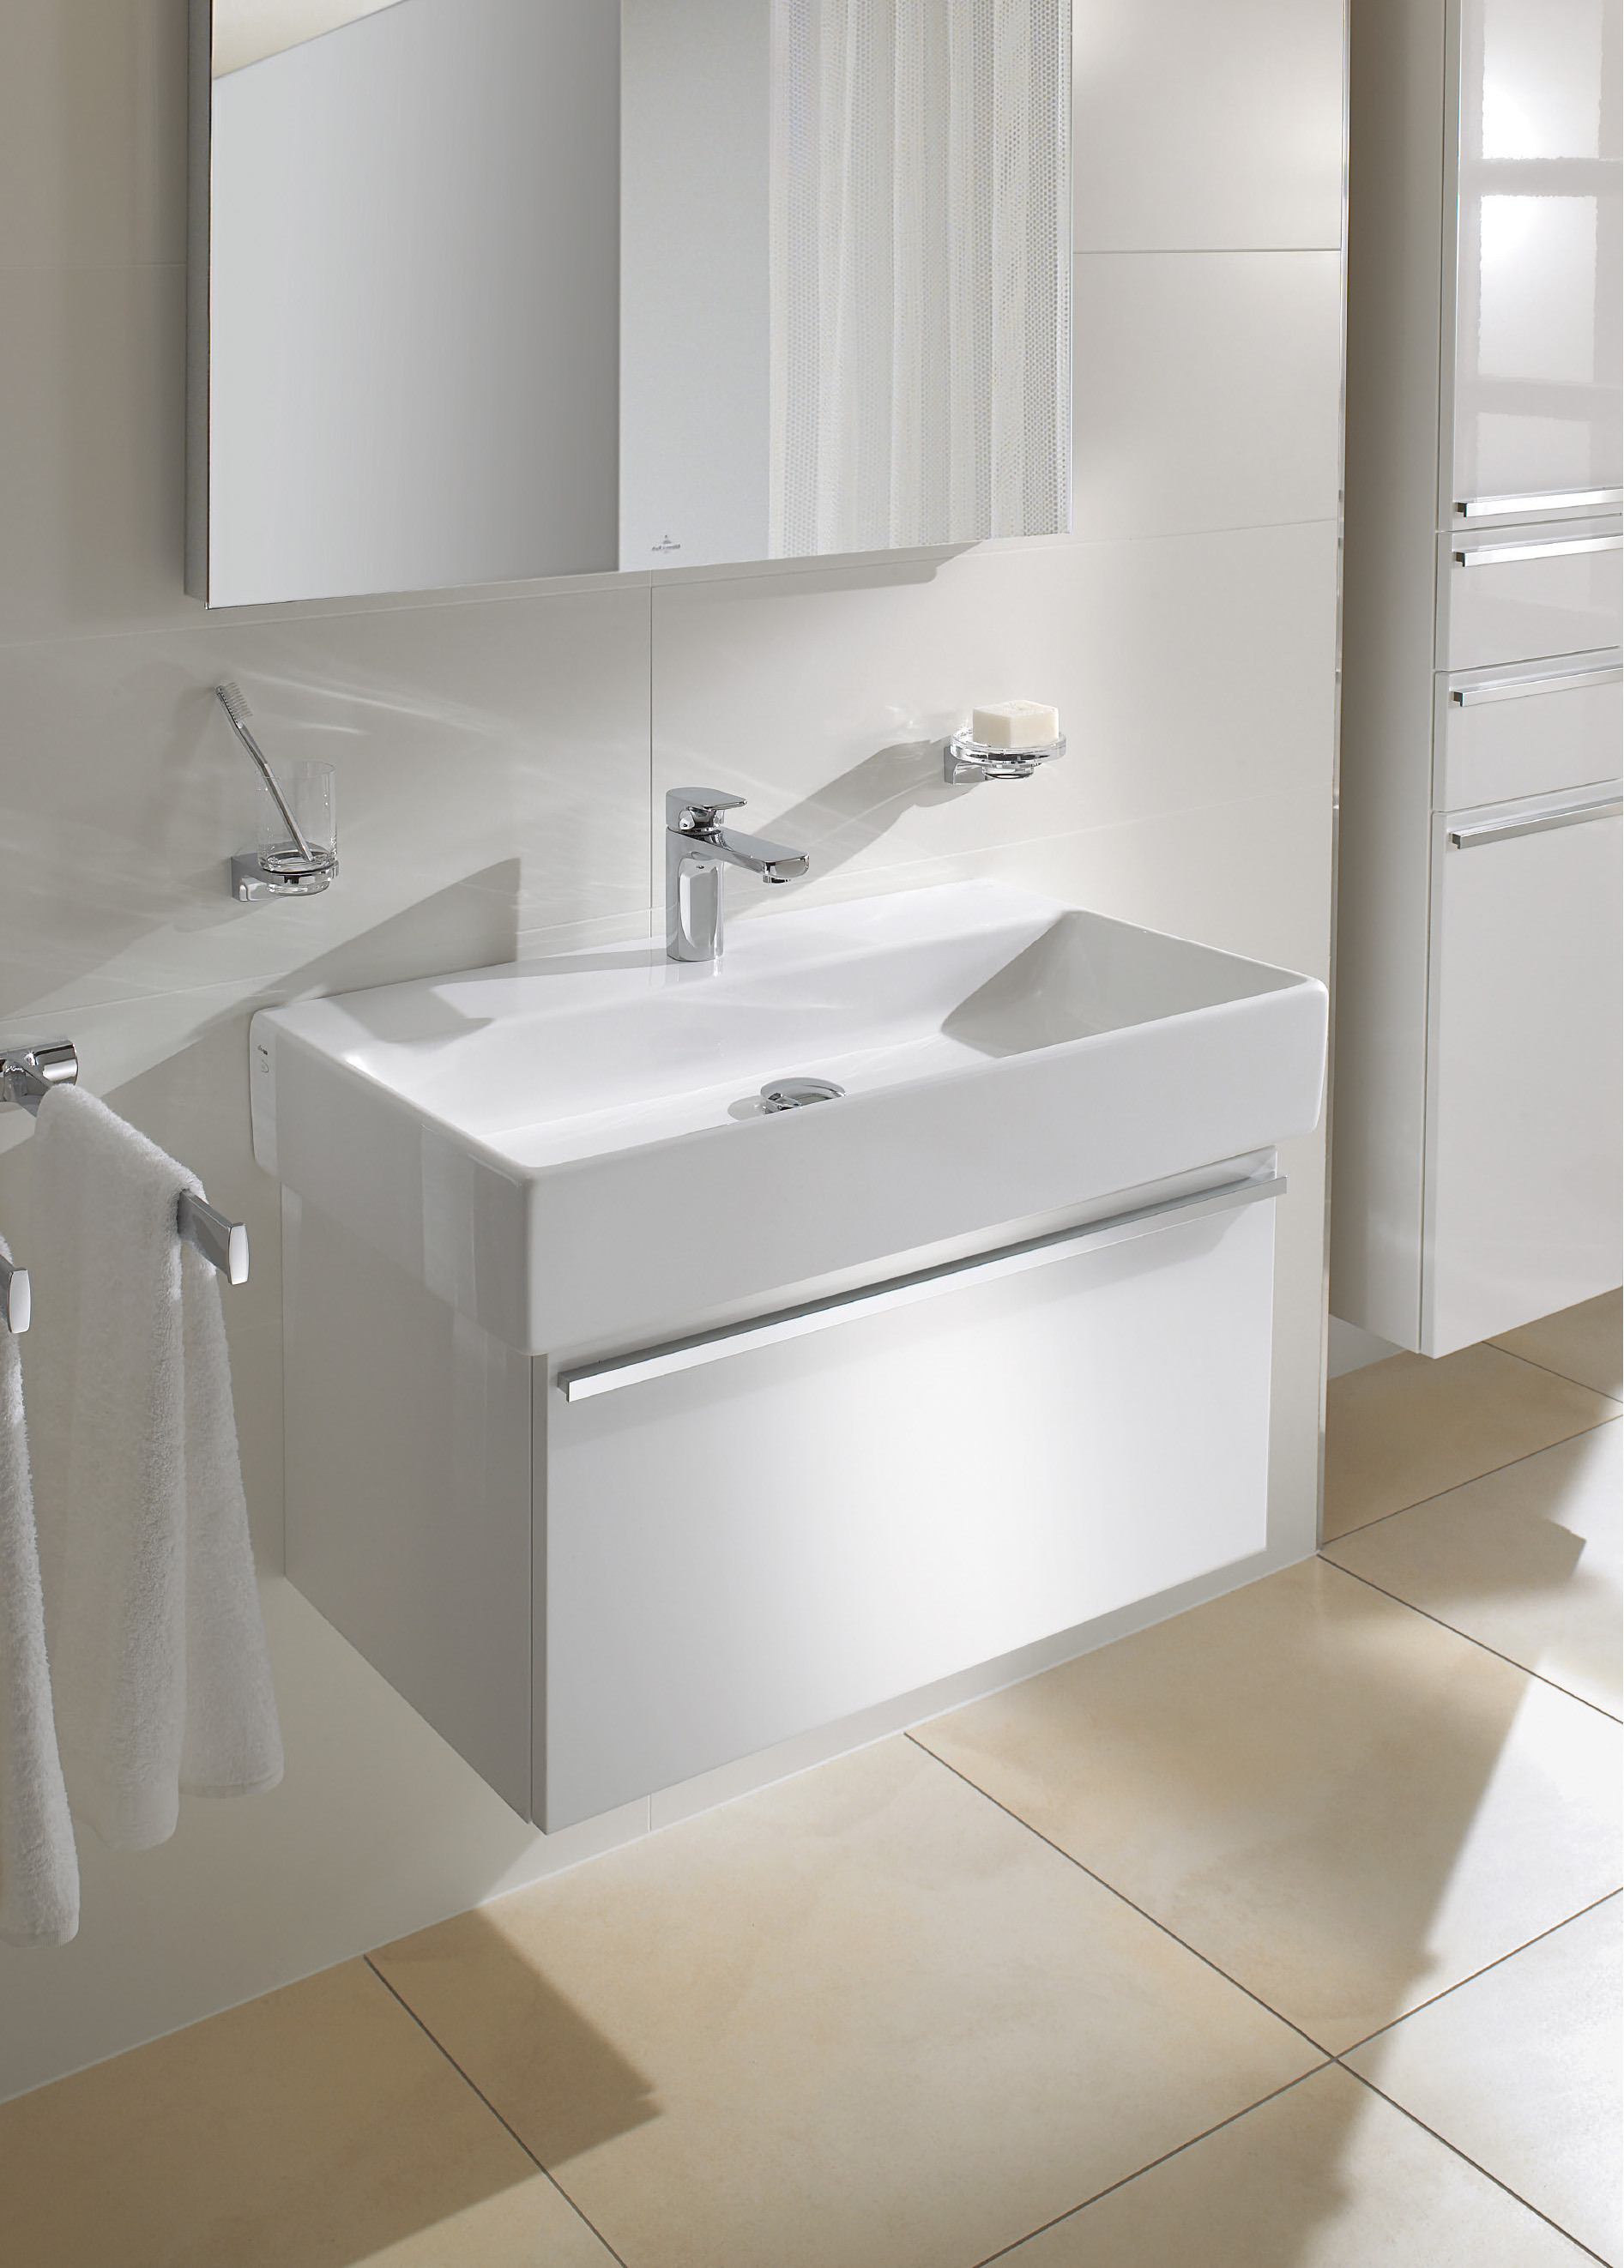 Central Line Bathroom furniture, Vanity unit for washbasin, Vanity units